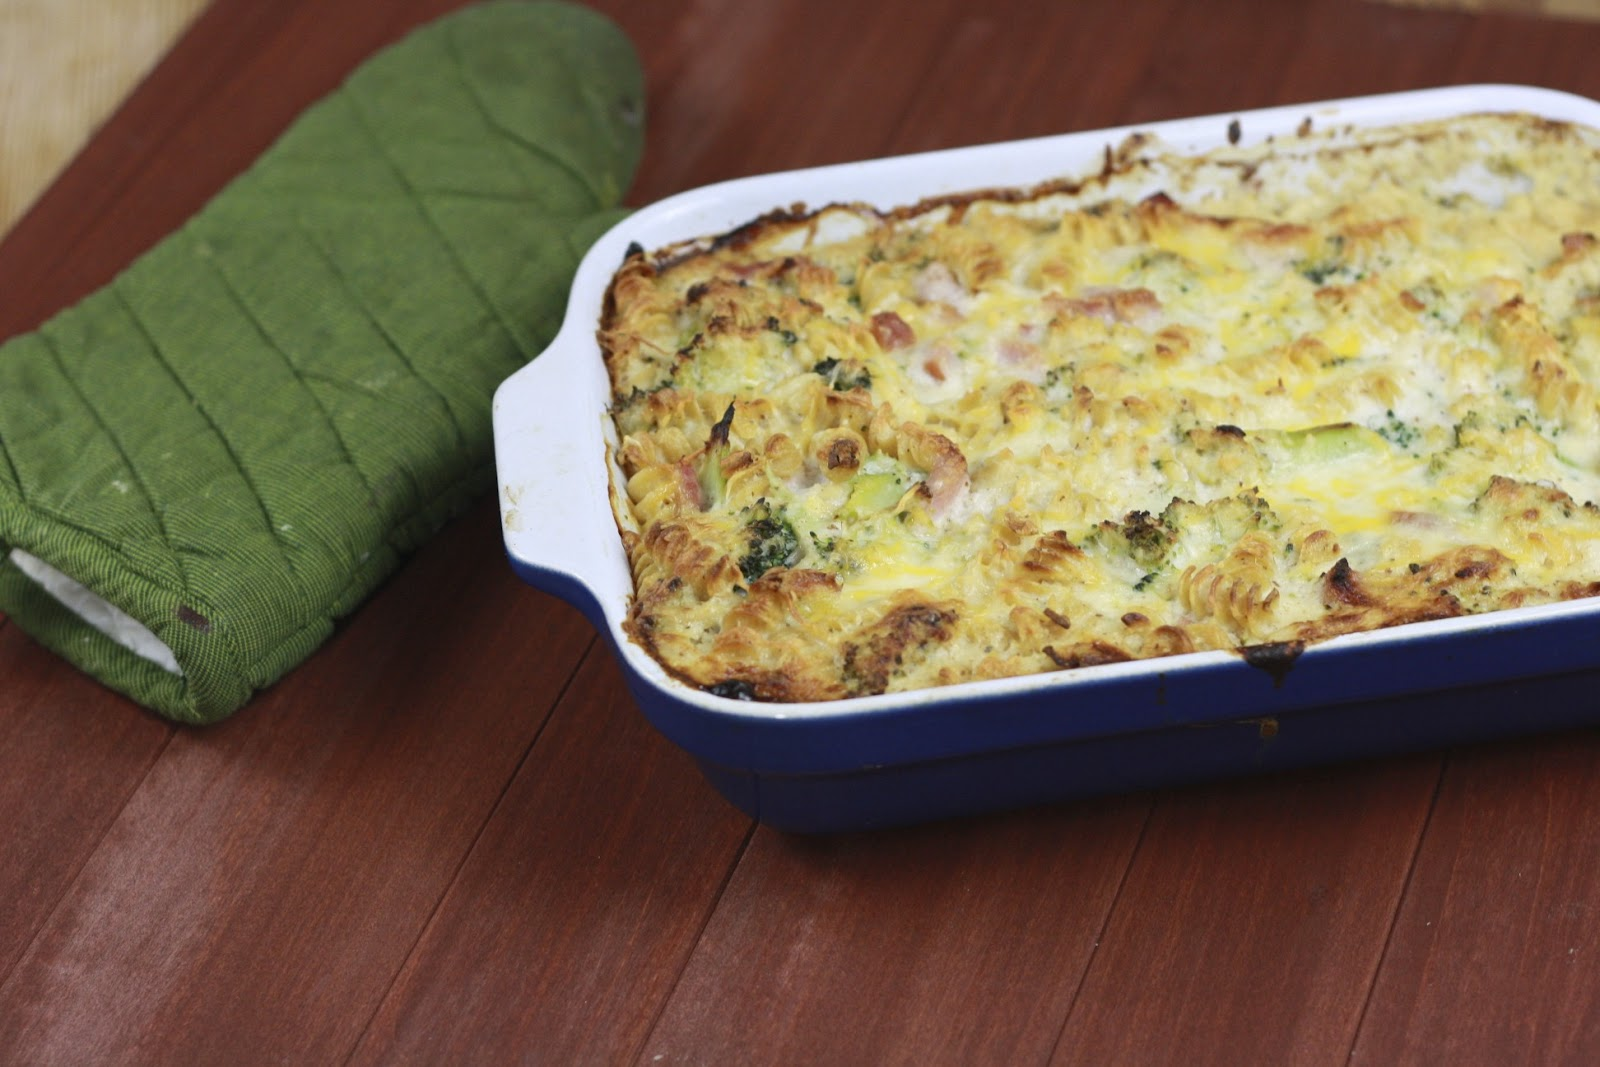 Baked Pasta with Broccoli, Ham, and Cheesy-Creamy Cauliflower Sauce